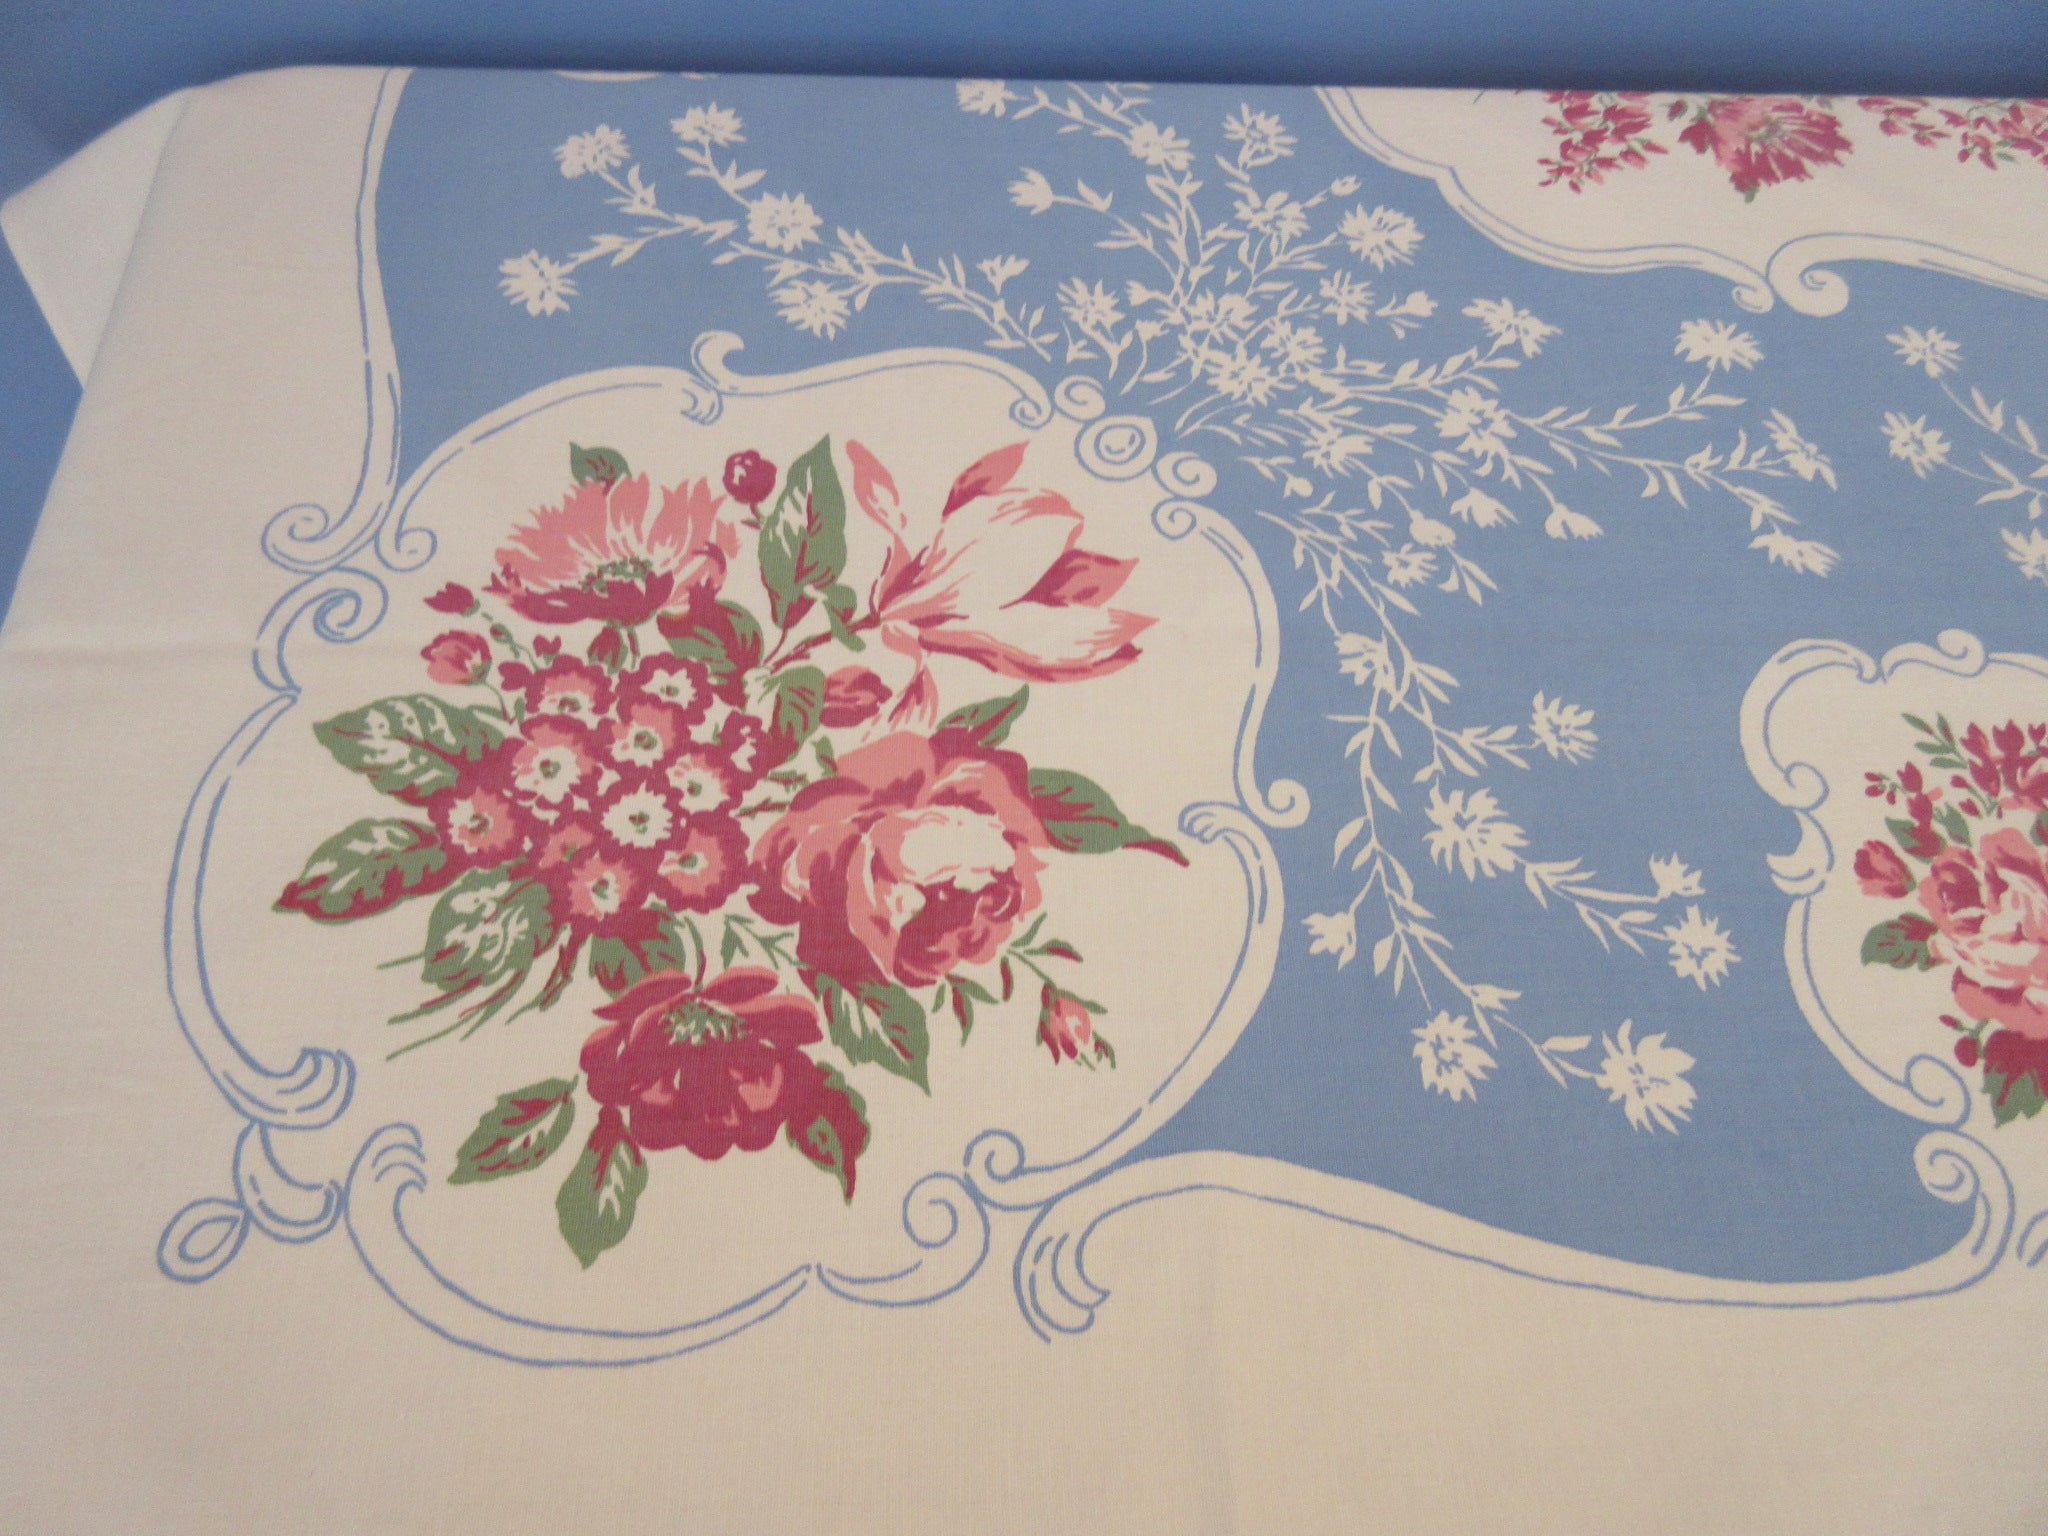 Larger Pink Rose Medallions on French Blue Floral Vintage Printed Tablecloth (72 X 55)